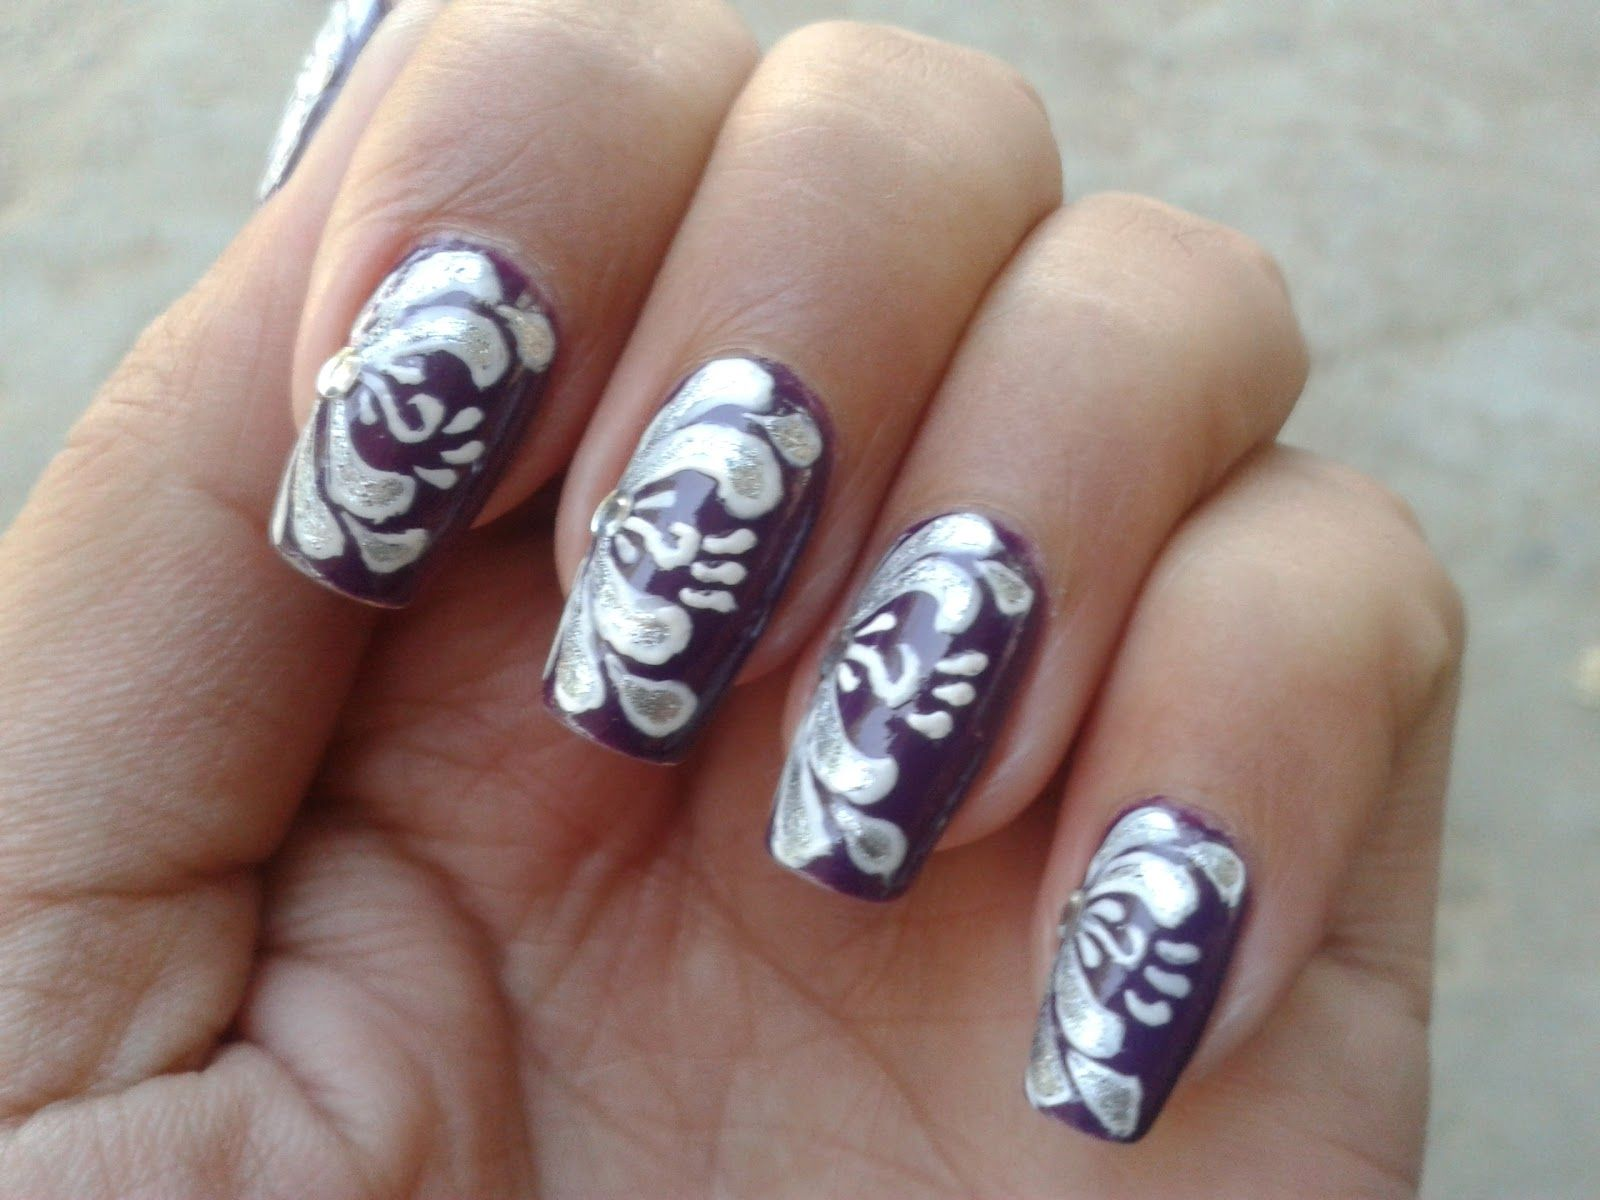 Nail art is an imaginative process and get your nails painted, or ...